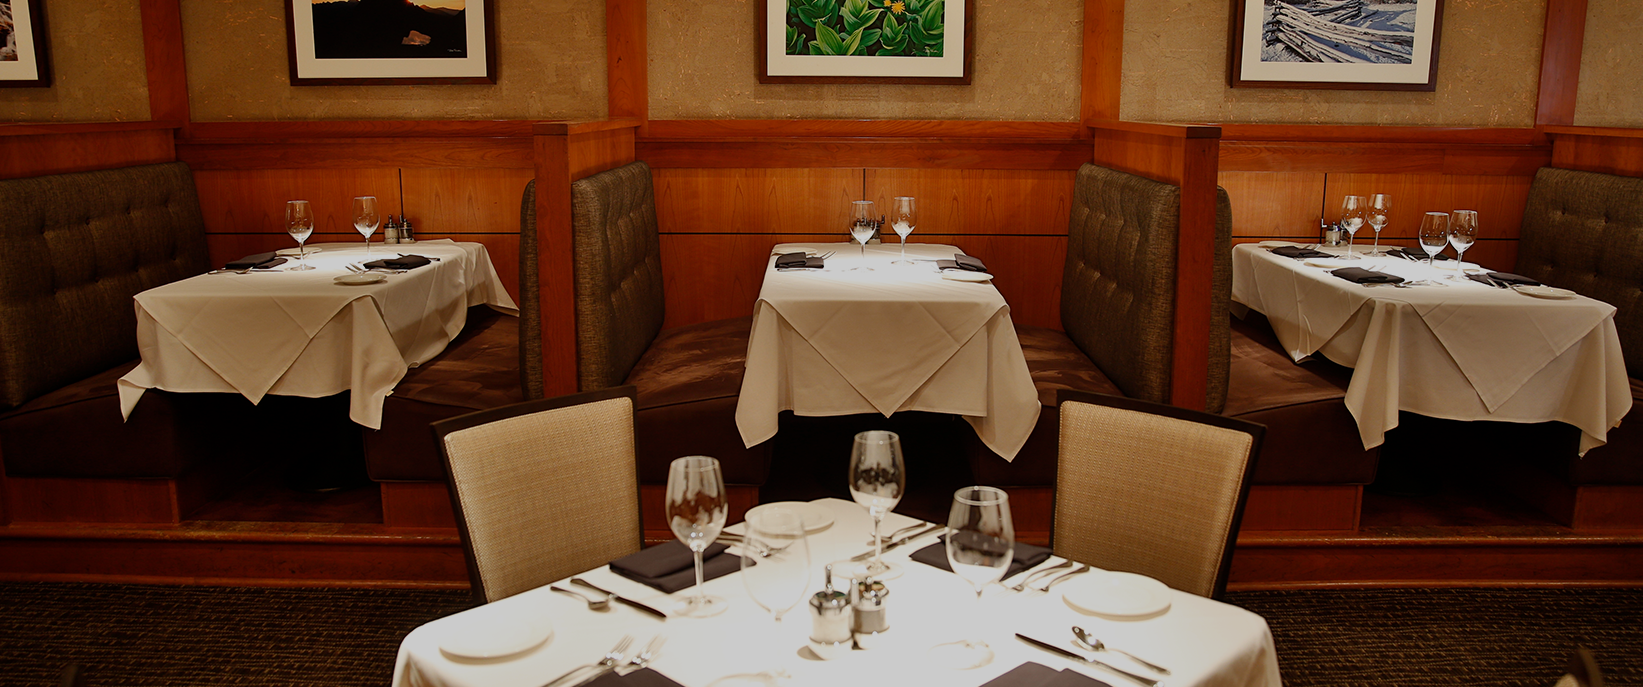 Executive Networking Lunch at Elway's